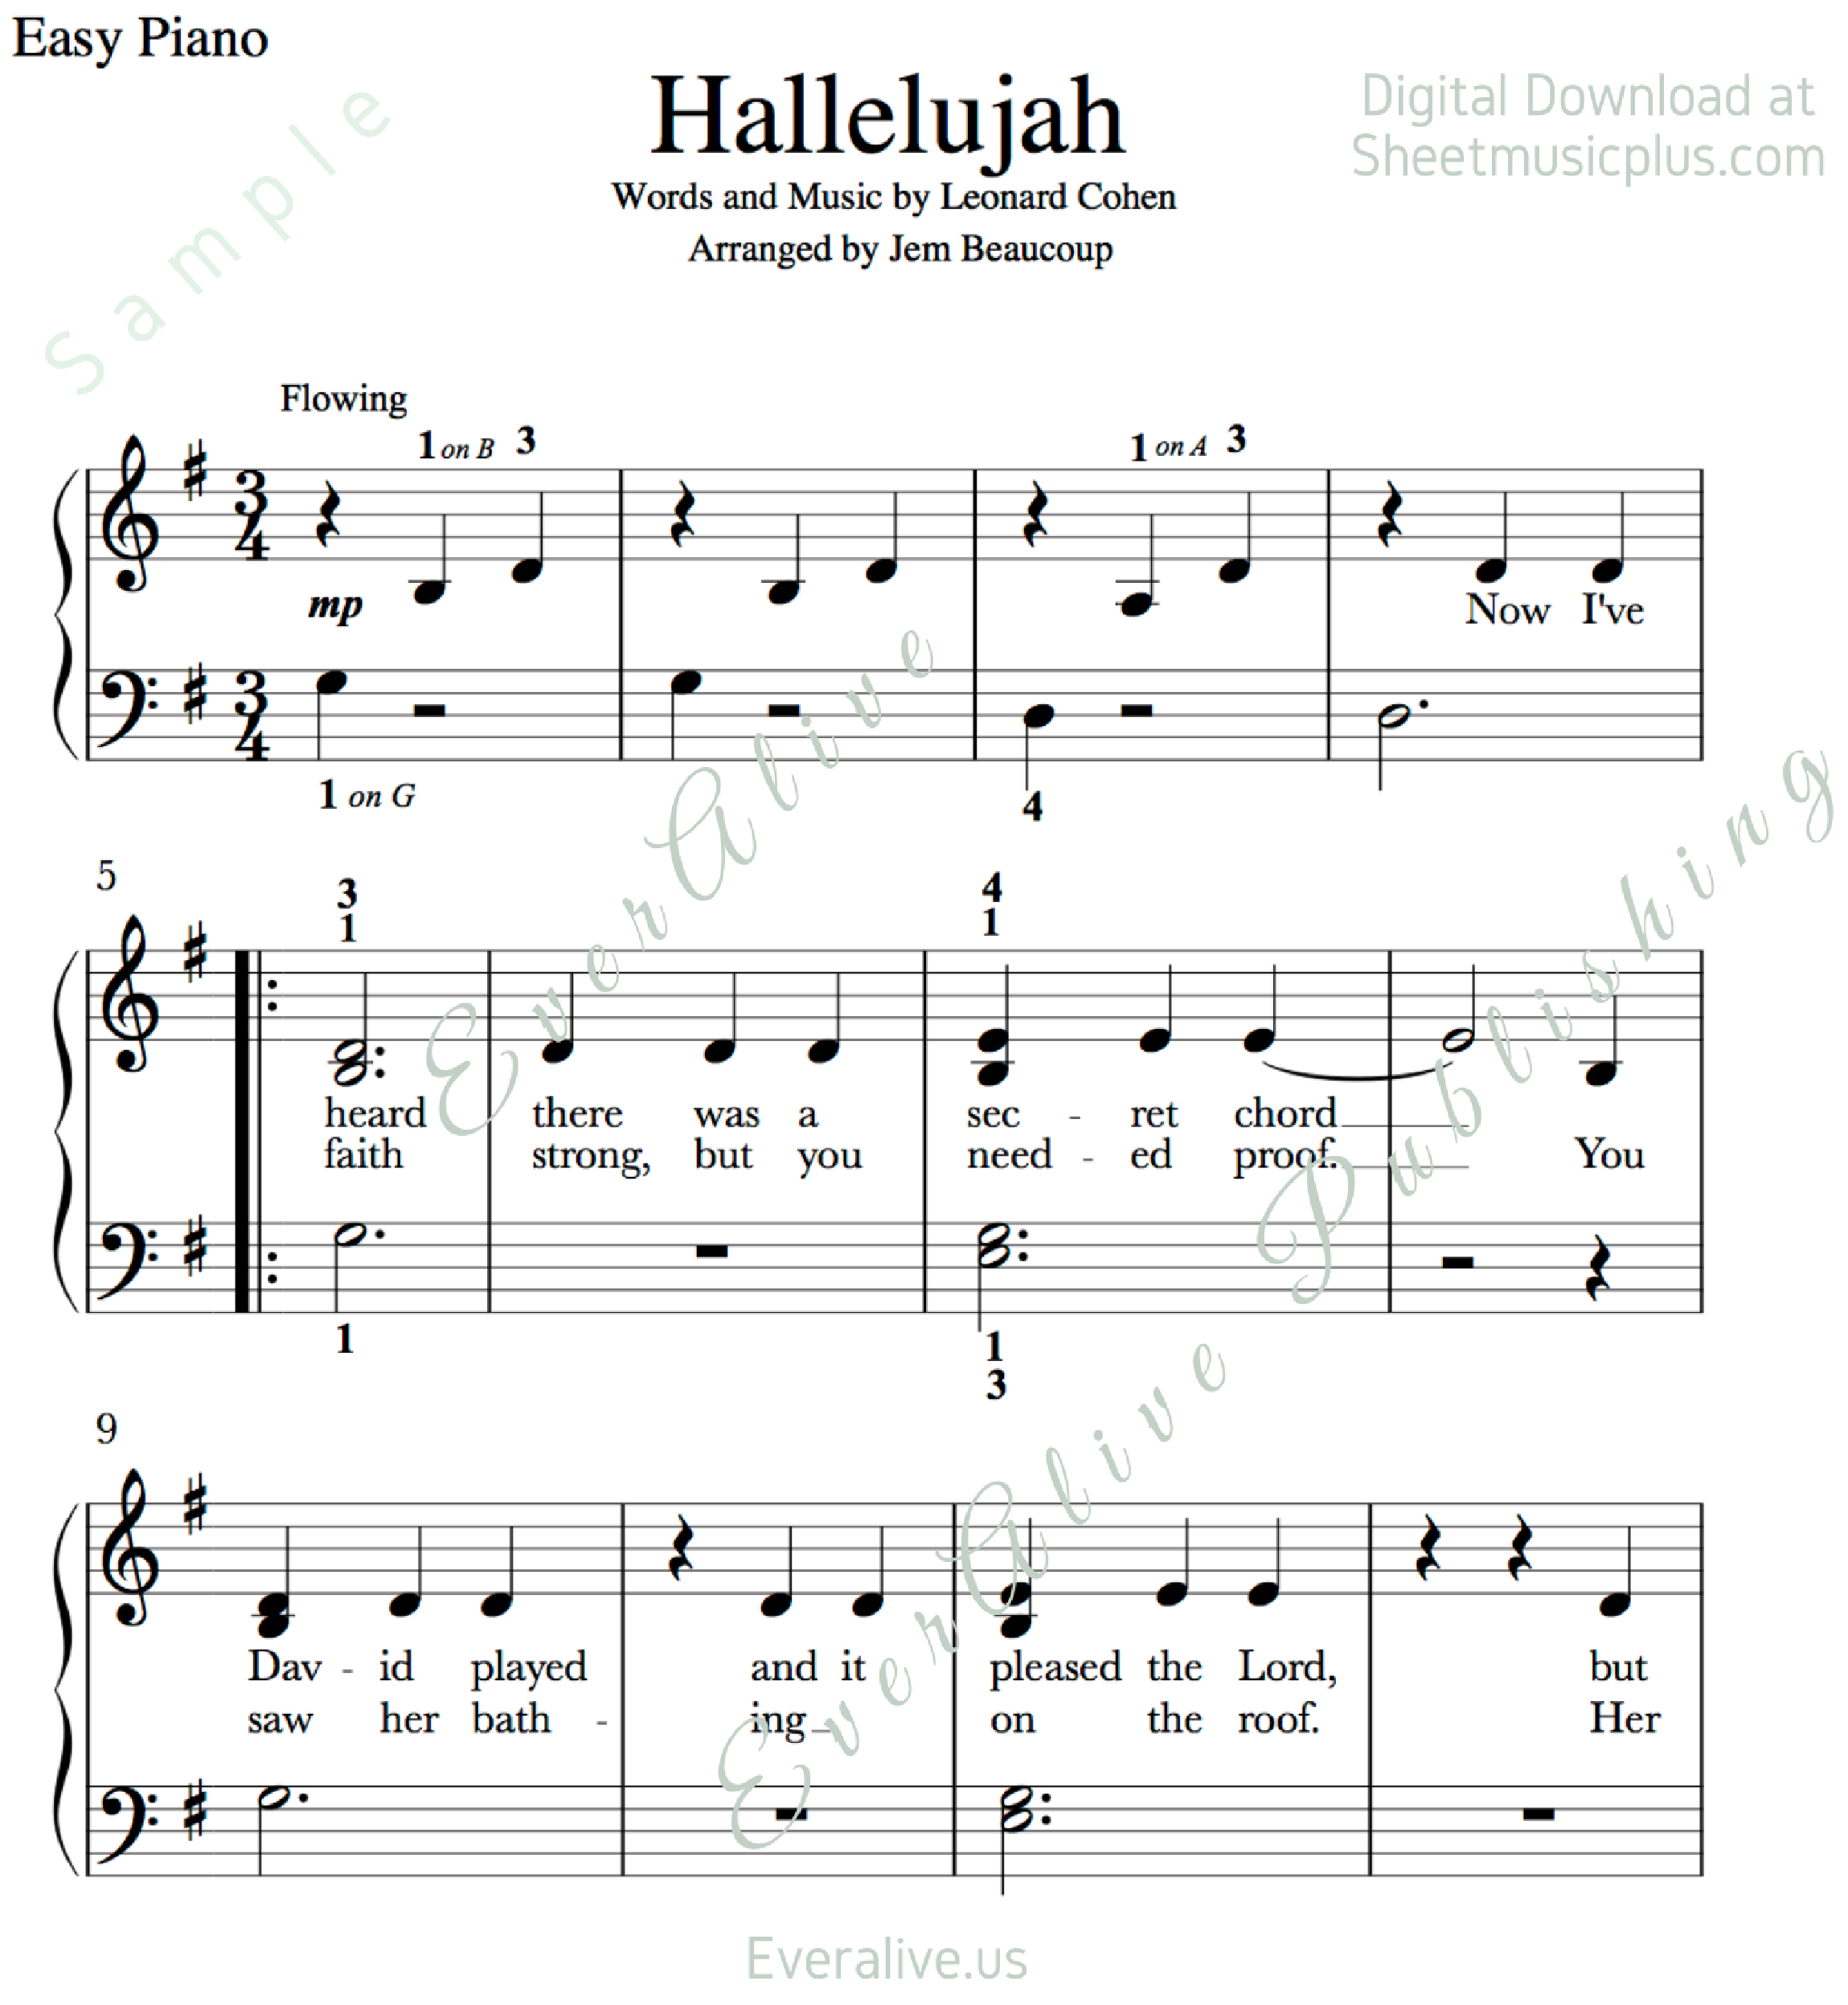 Easy Piano Sheet Music With: Print And Download. Hallelujah Easy Piano Music. Leonard